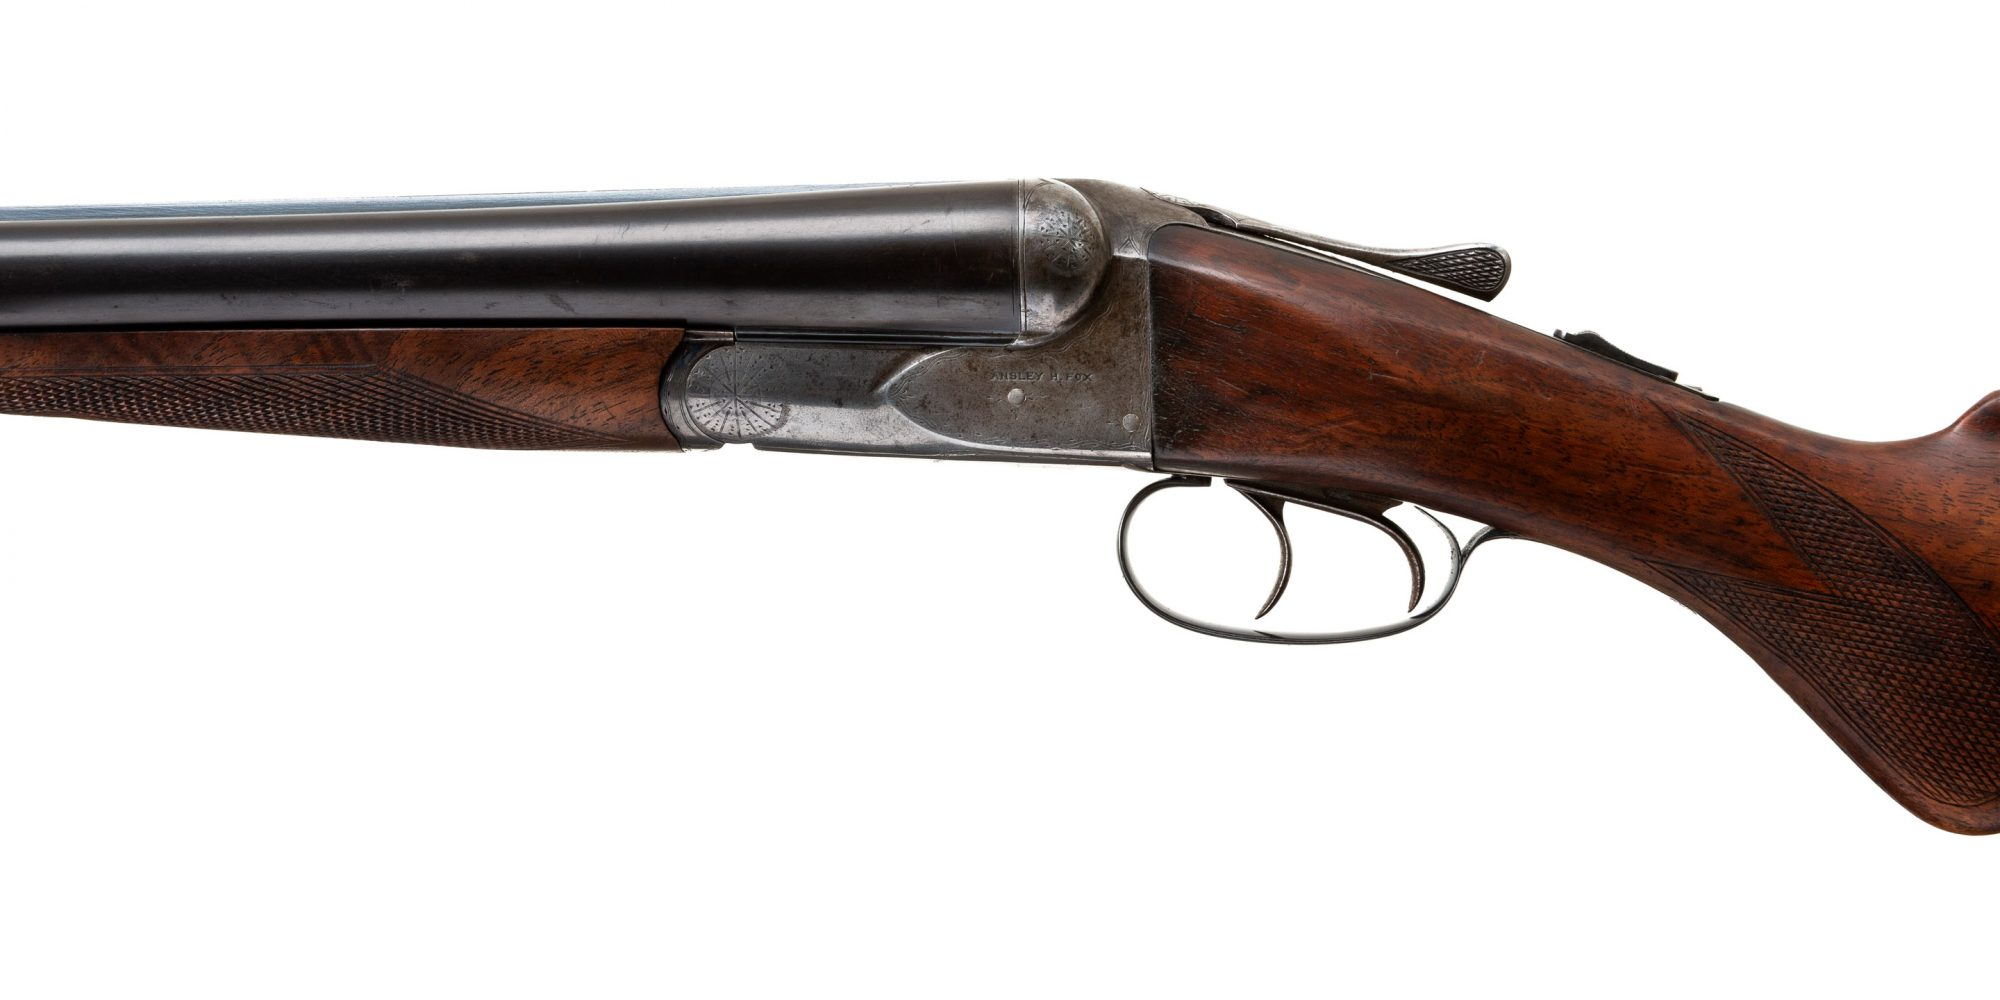 Photo of an A.H. Fox A Grade 12 gauge shotgun, for sale as is by Turnbull Restoration of Bloomfield, NY